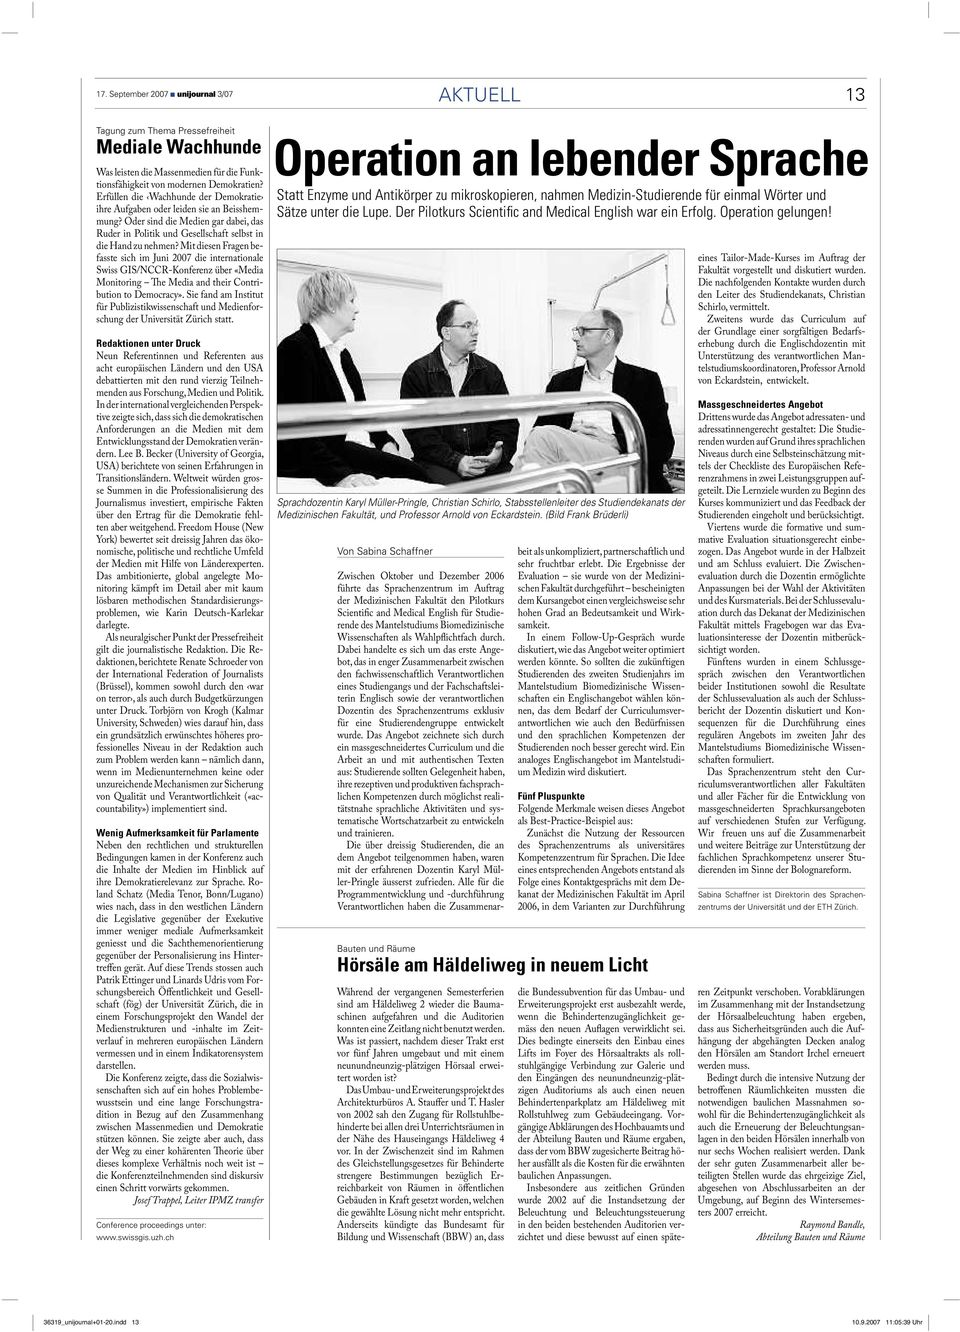 Mit diesen Fragen befasste sich im Juni 2007 die internationale Swiss GIS/NCCR-Konferenz über «Media Monitoring The Media and their Contribution todemocracy».